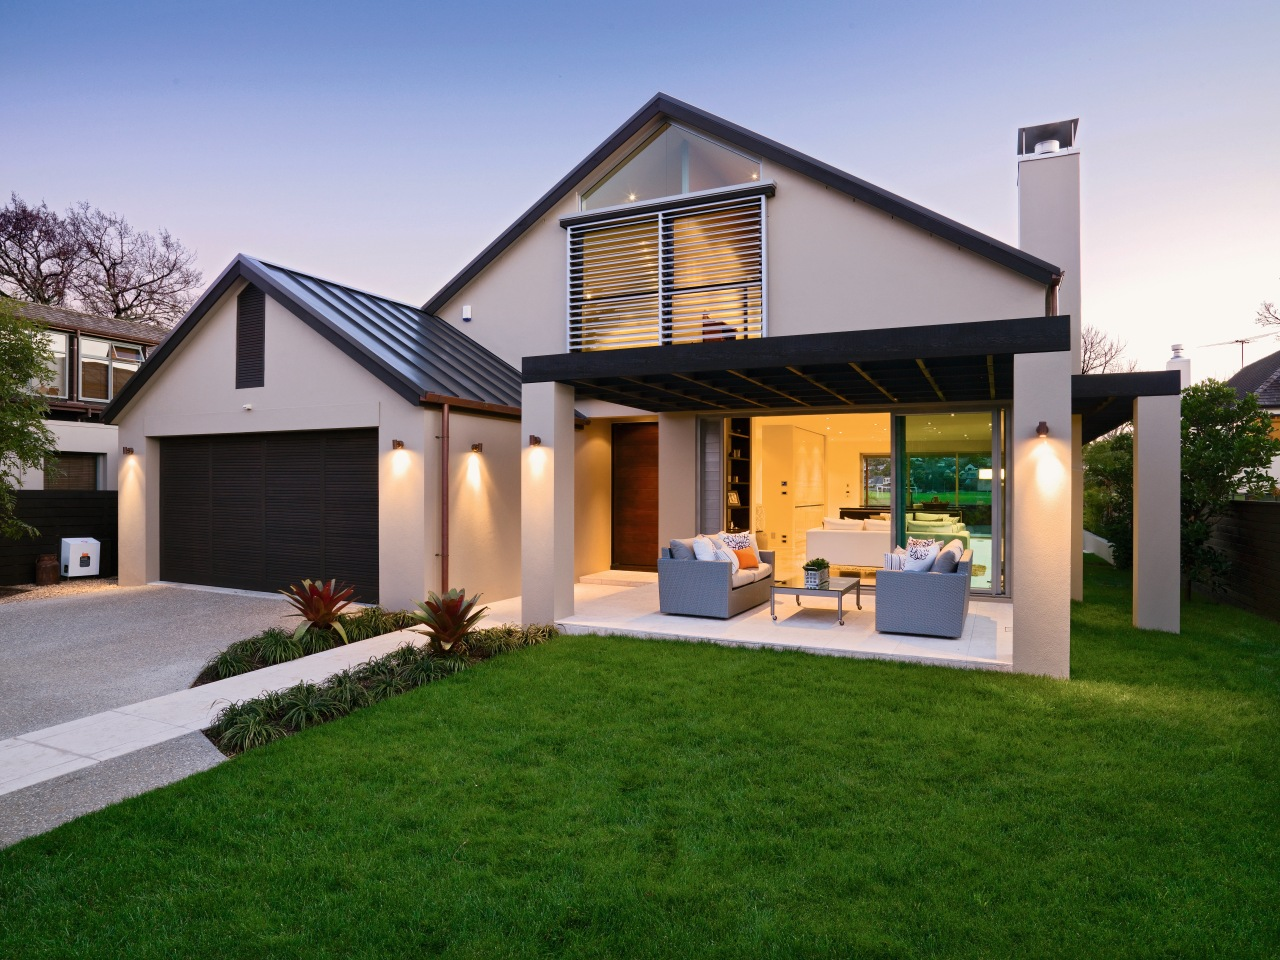 A view of a home custom built by backyard, cottage, elevation, estate, facade, home, house, property, real estate, residential area, roof, siding, villa, window, yard, green